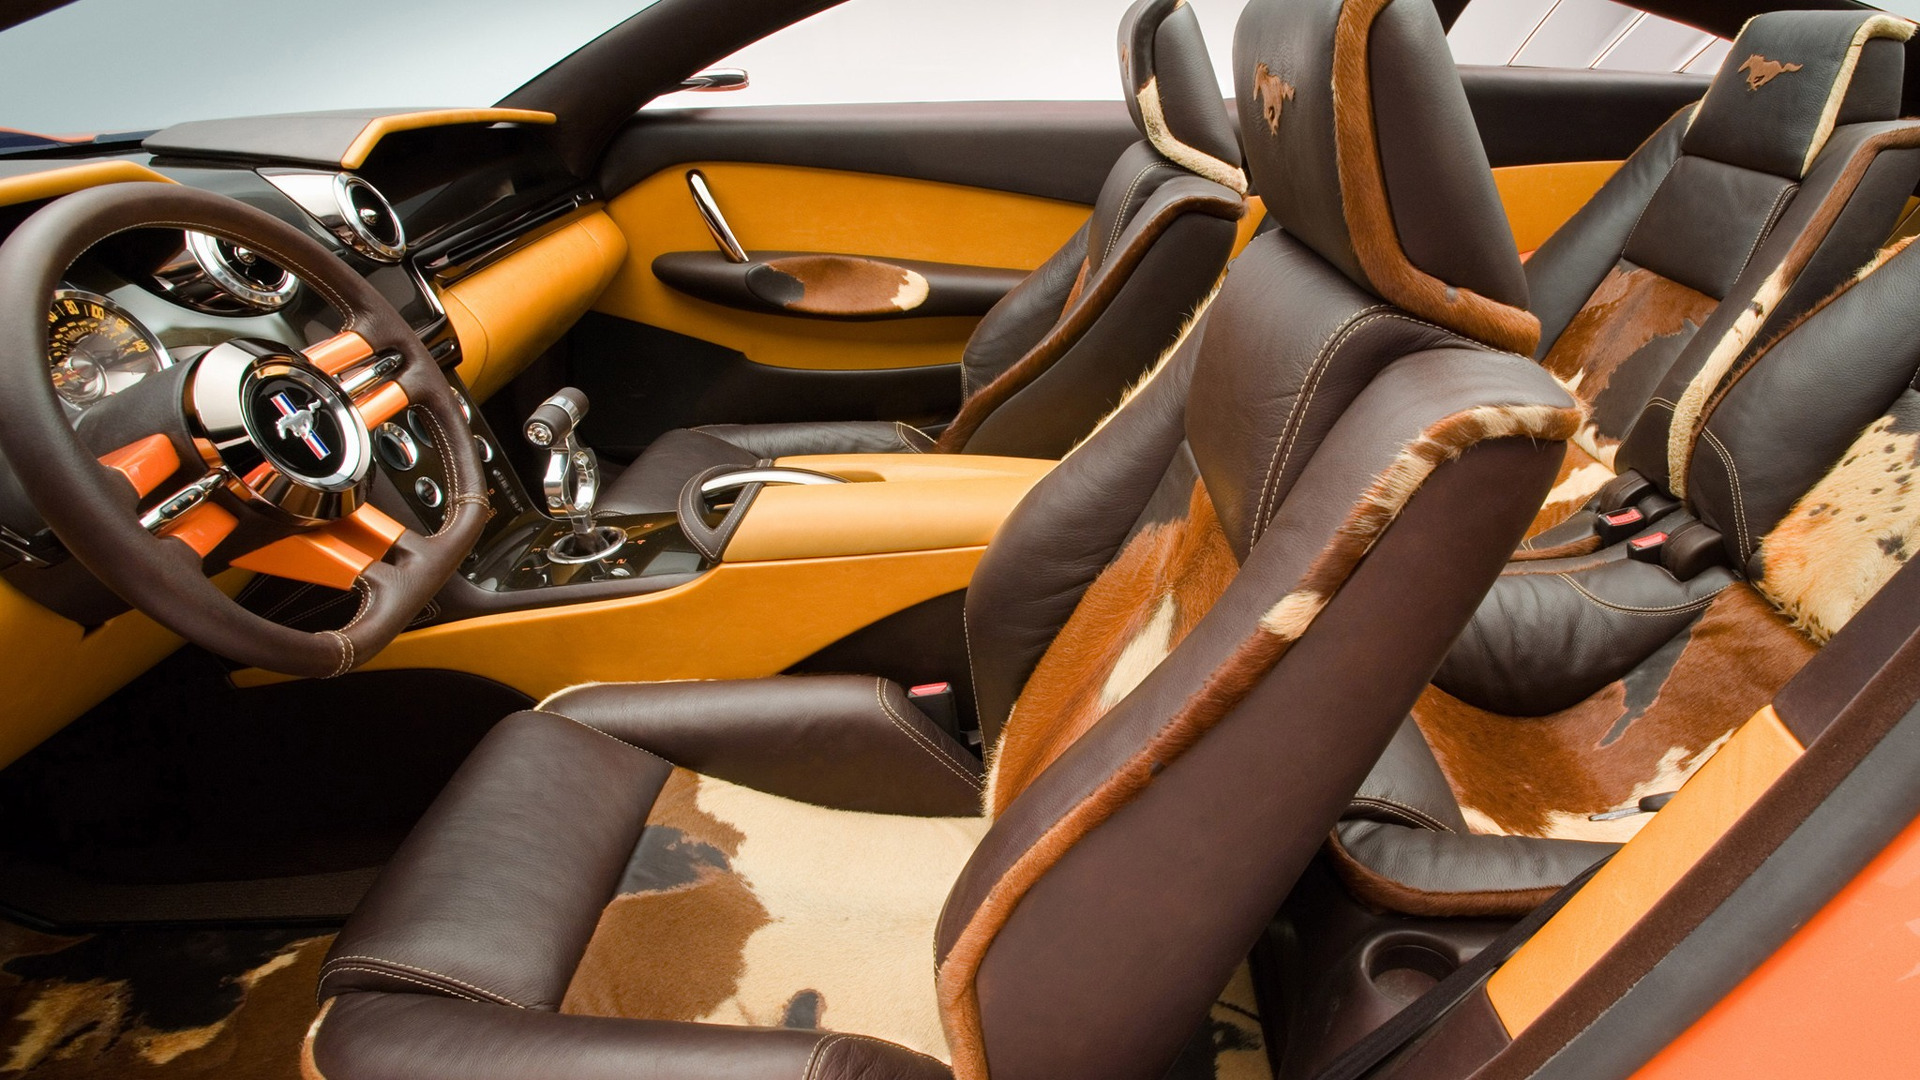 Ford Mustang Giugiaro concept: The interior of the Mustang Giugiaro concept features a dramatic instrument panel that sweeps the width of the car; circular gauges that project from behind the steering wheel; dark brown horsehide-covered headrests with horse logo accents; and seat cushions and backrests elaborately upholstered in dark brown mottled horse hides.